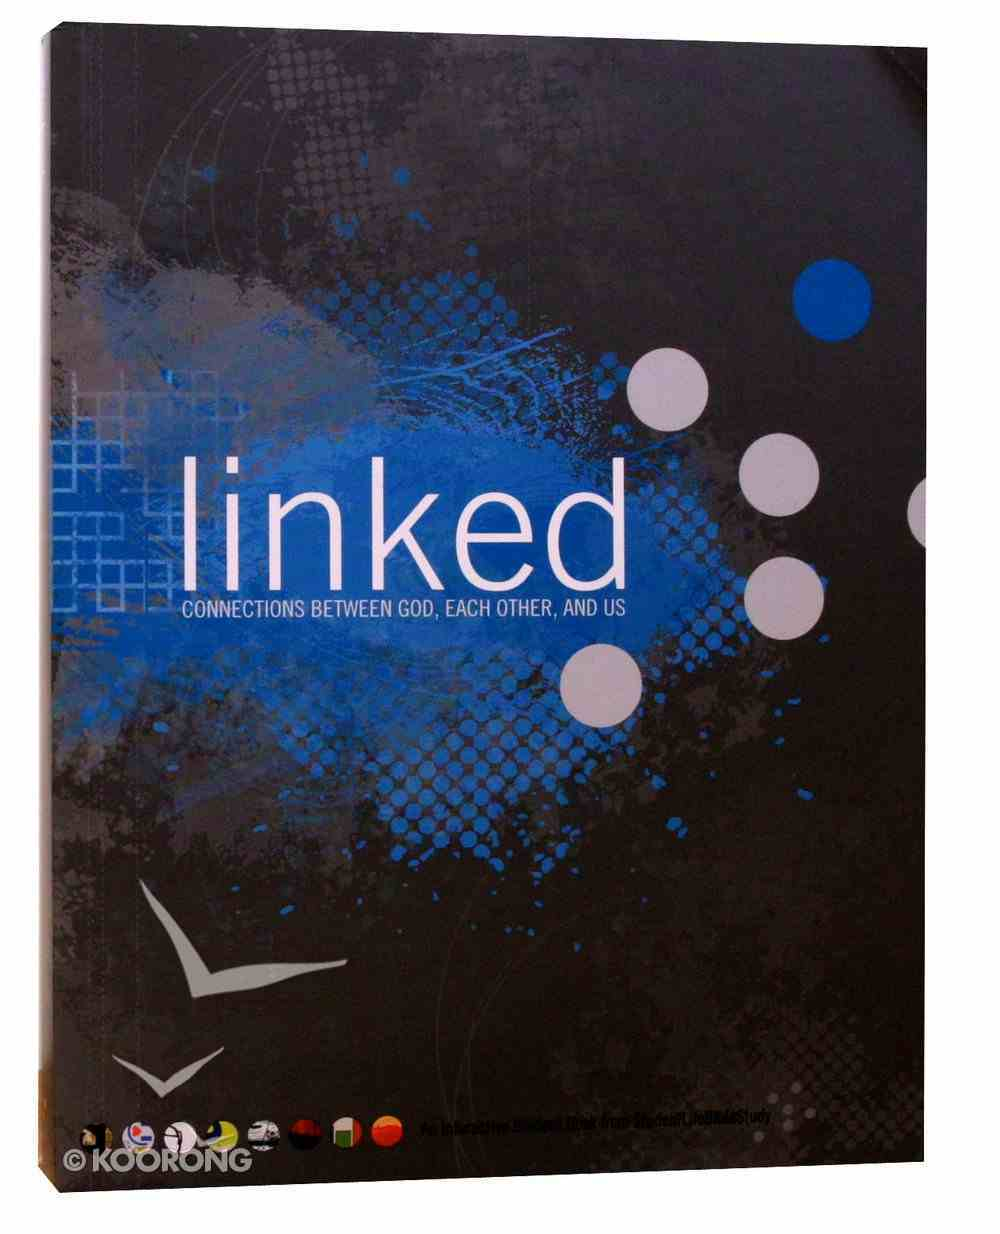 Linked - Connections Between God, Each Other, and Us Paperback